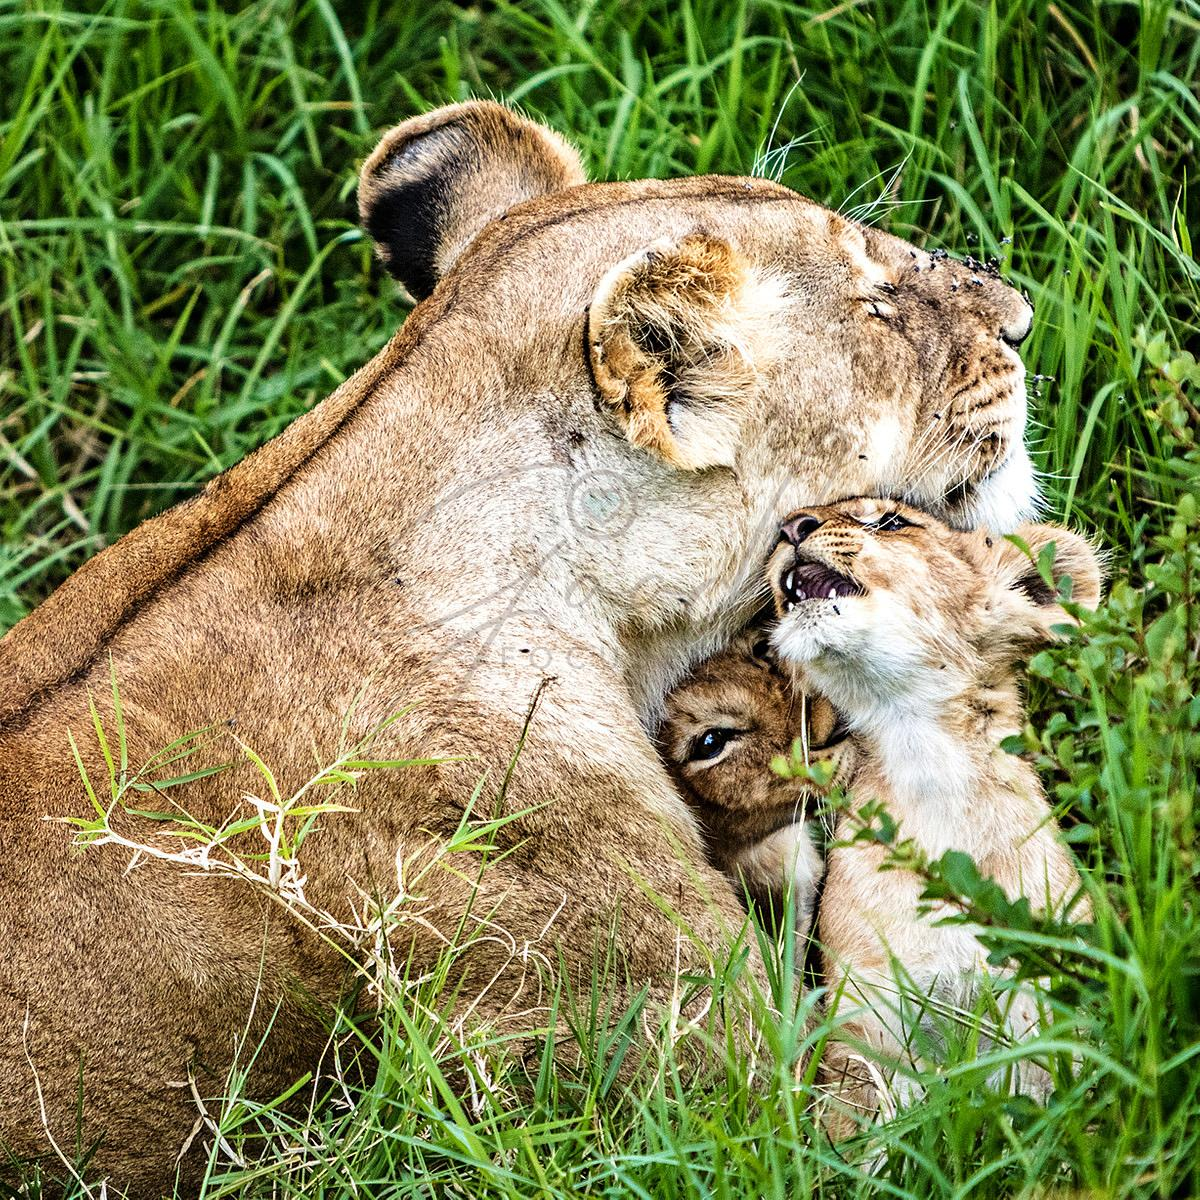 Affectionate_Lioness_With_Playful_Baby_Cubs